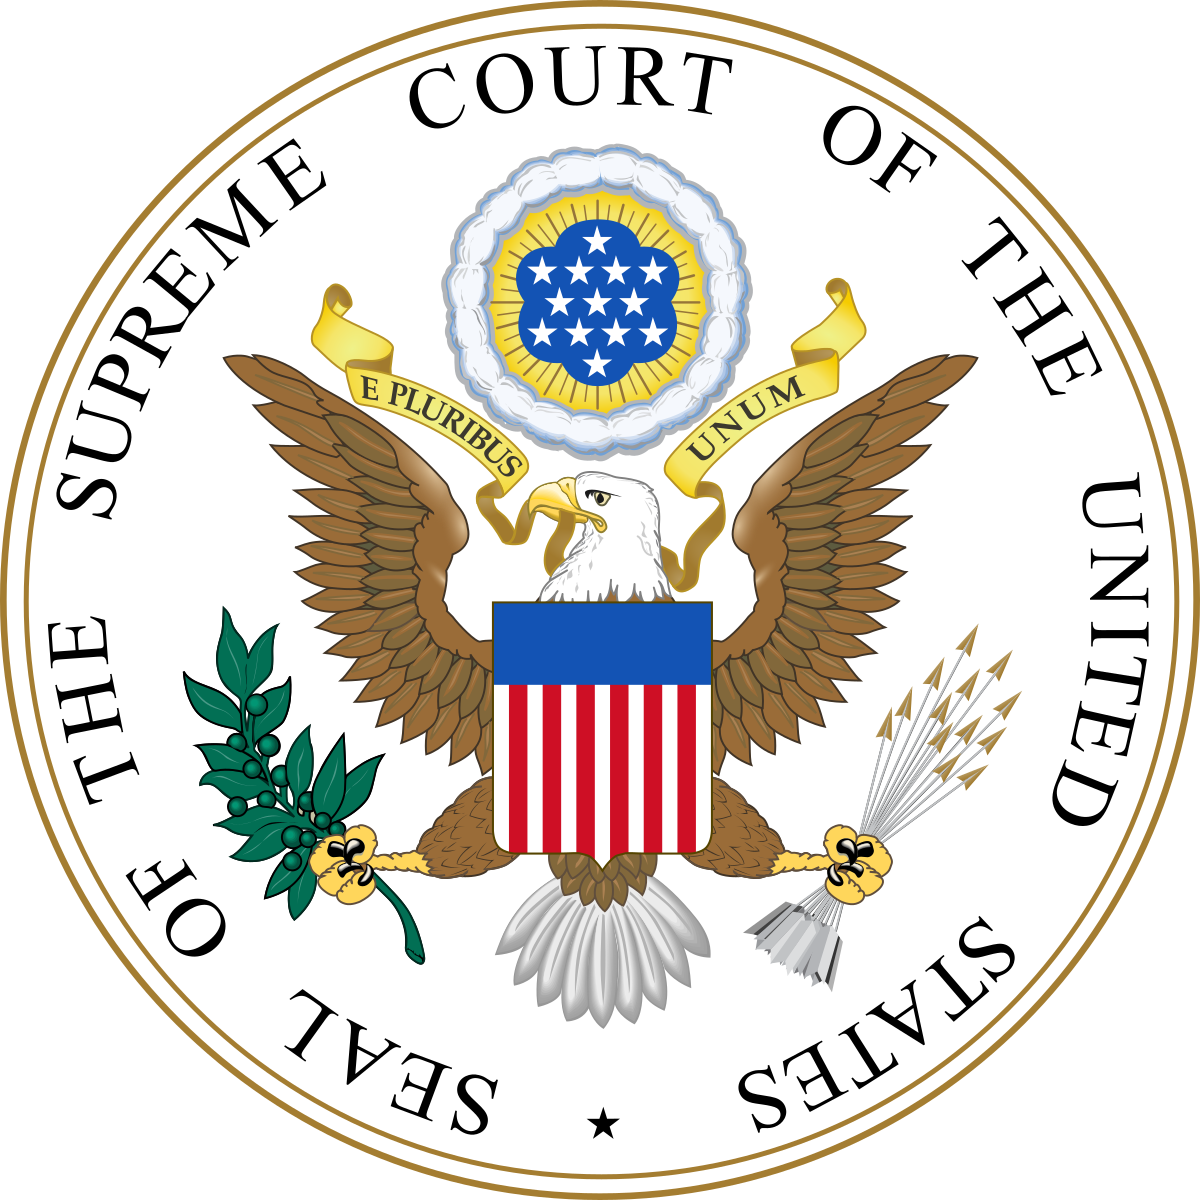 Justice clipart plessy v ferguson. Supreme court hears landmark